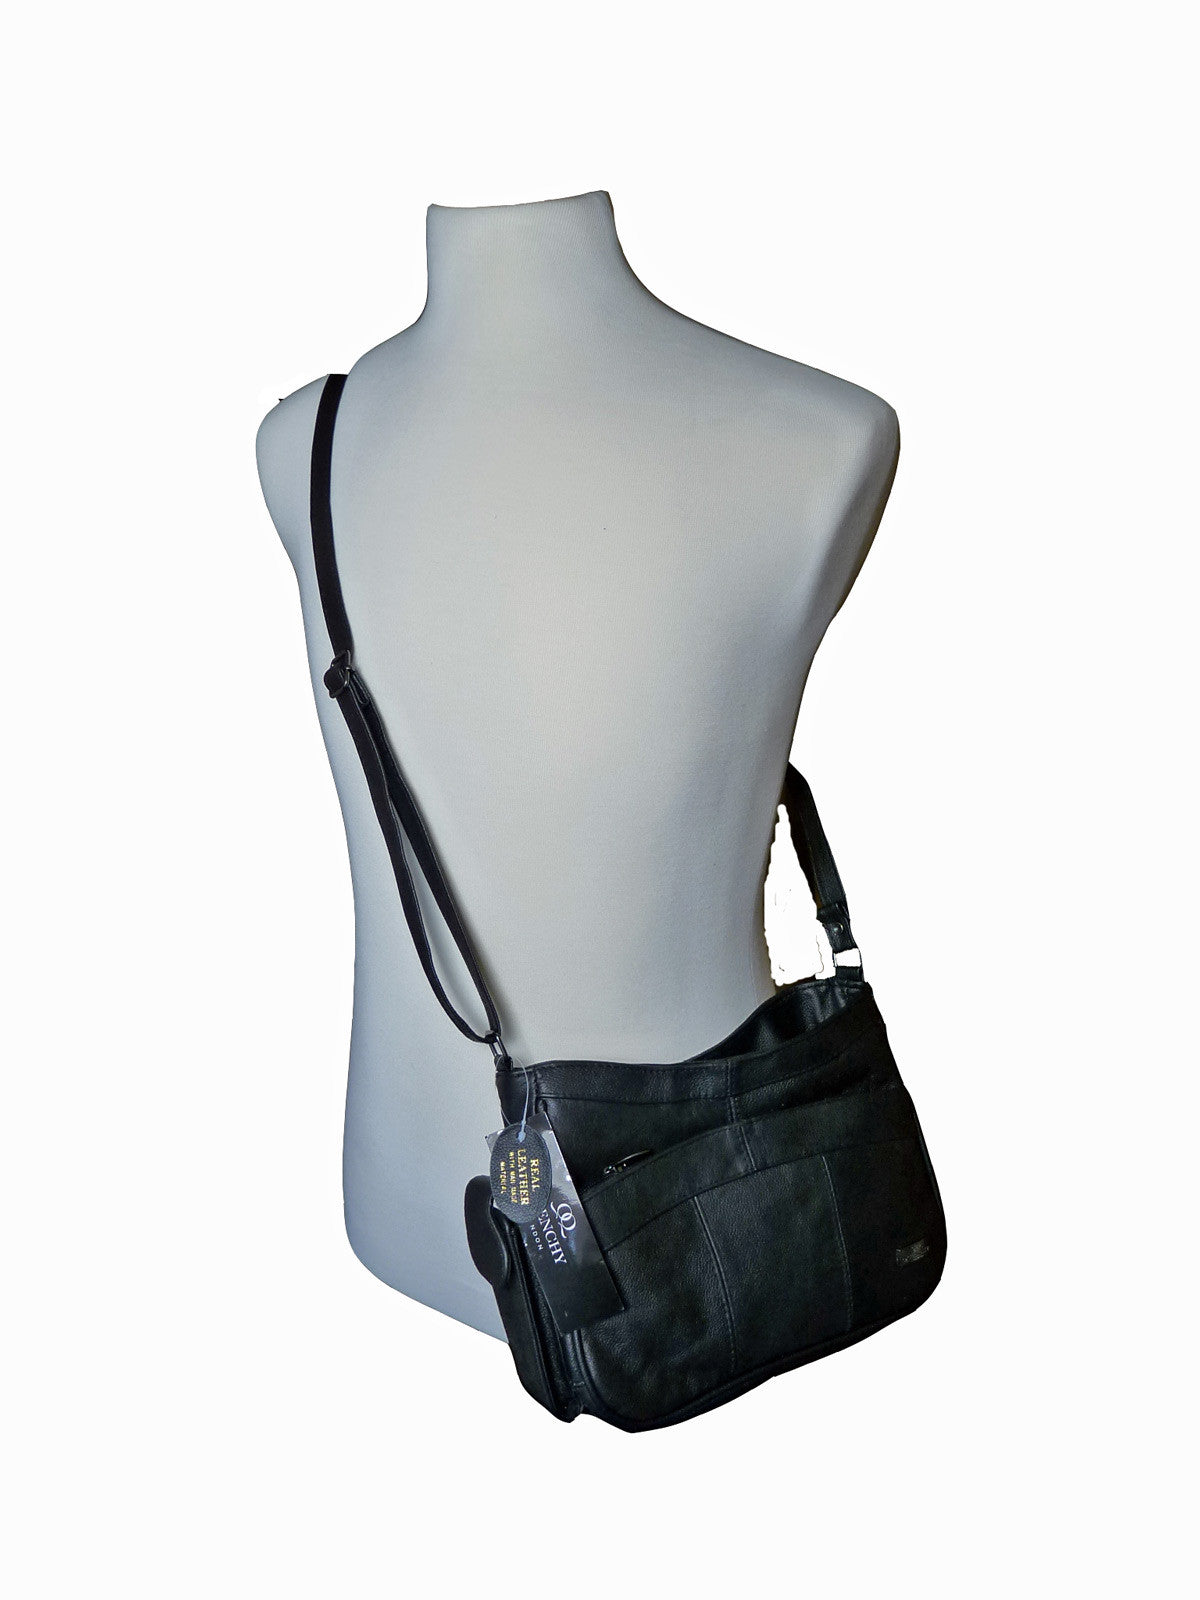 Leather Ladies Cross Body Bags QL743 body view